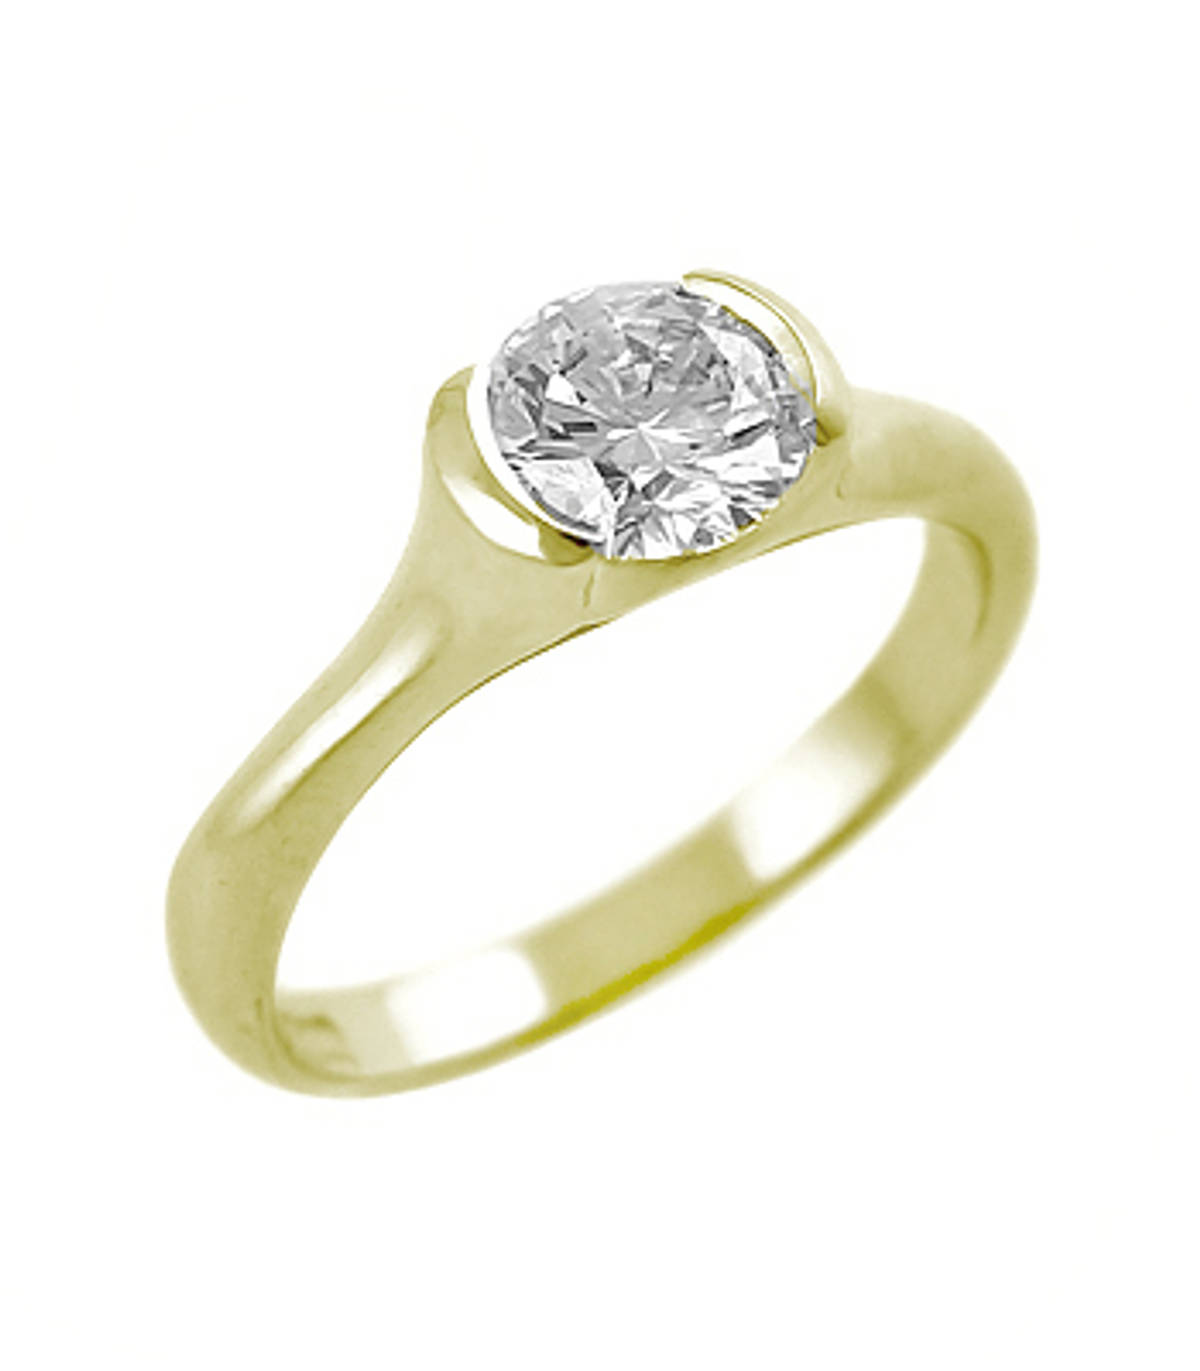 Oval diamond solitaire ring in 18 ct yellow gold